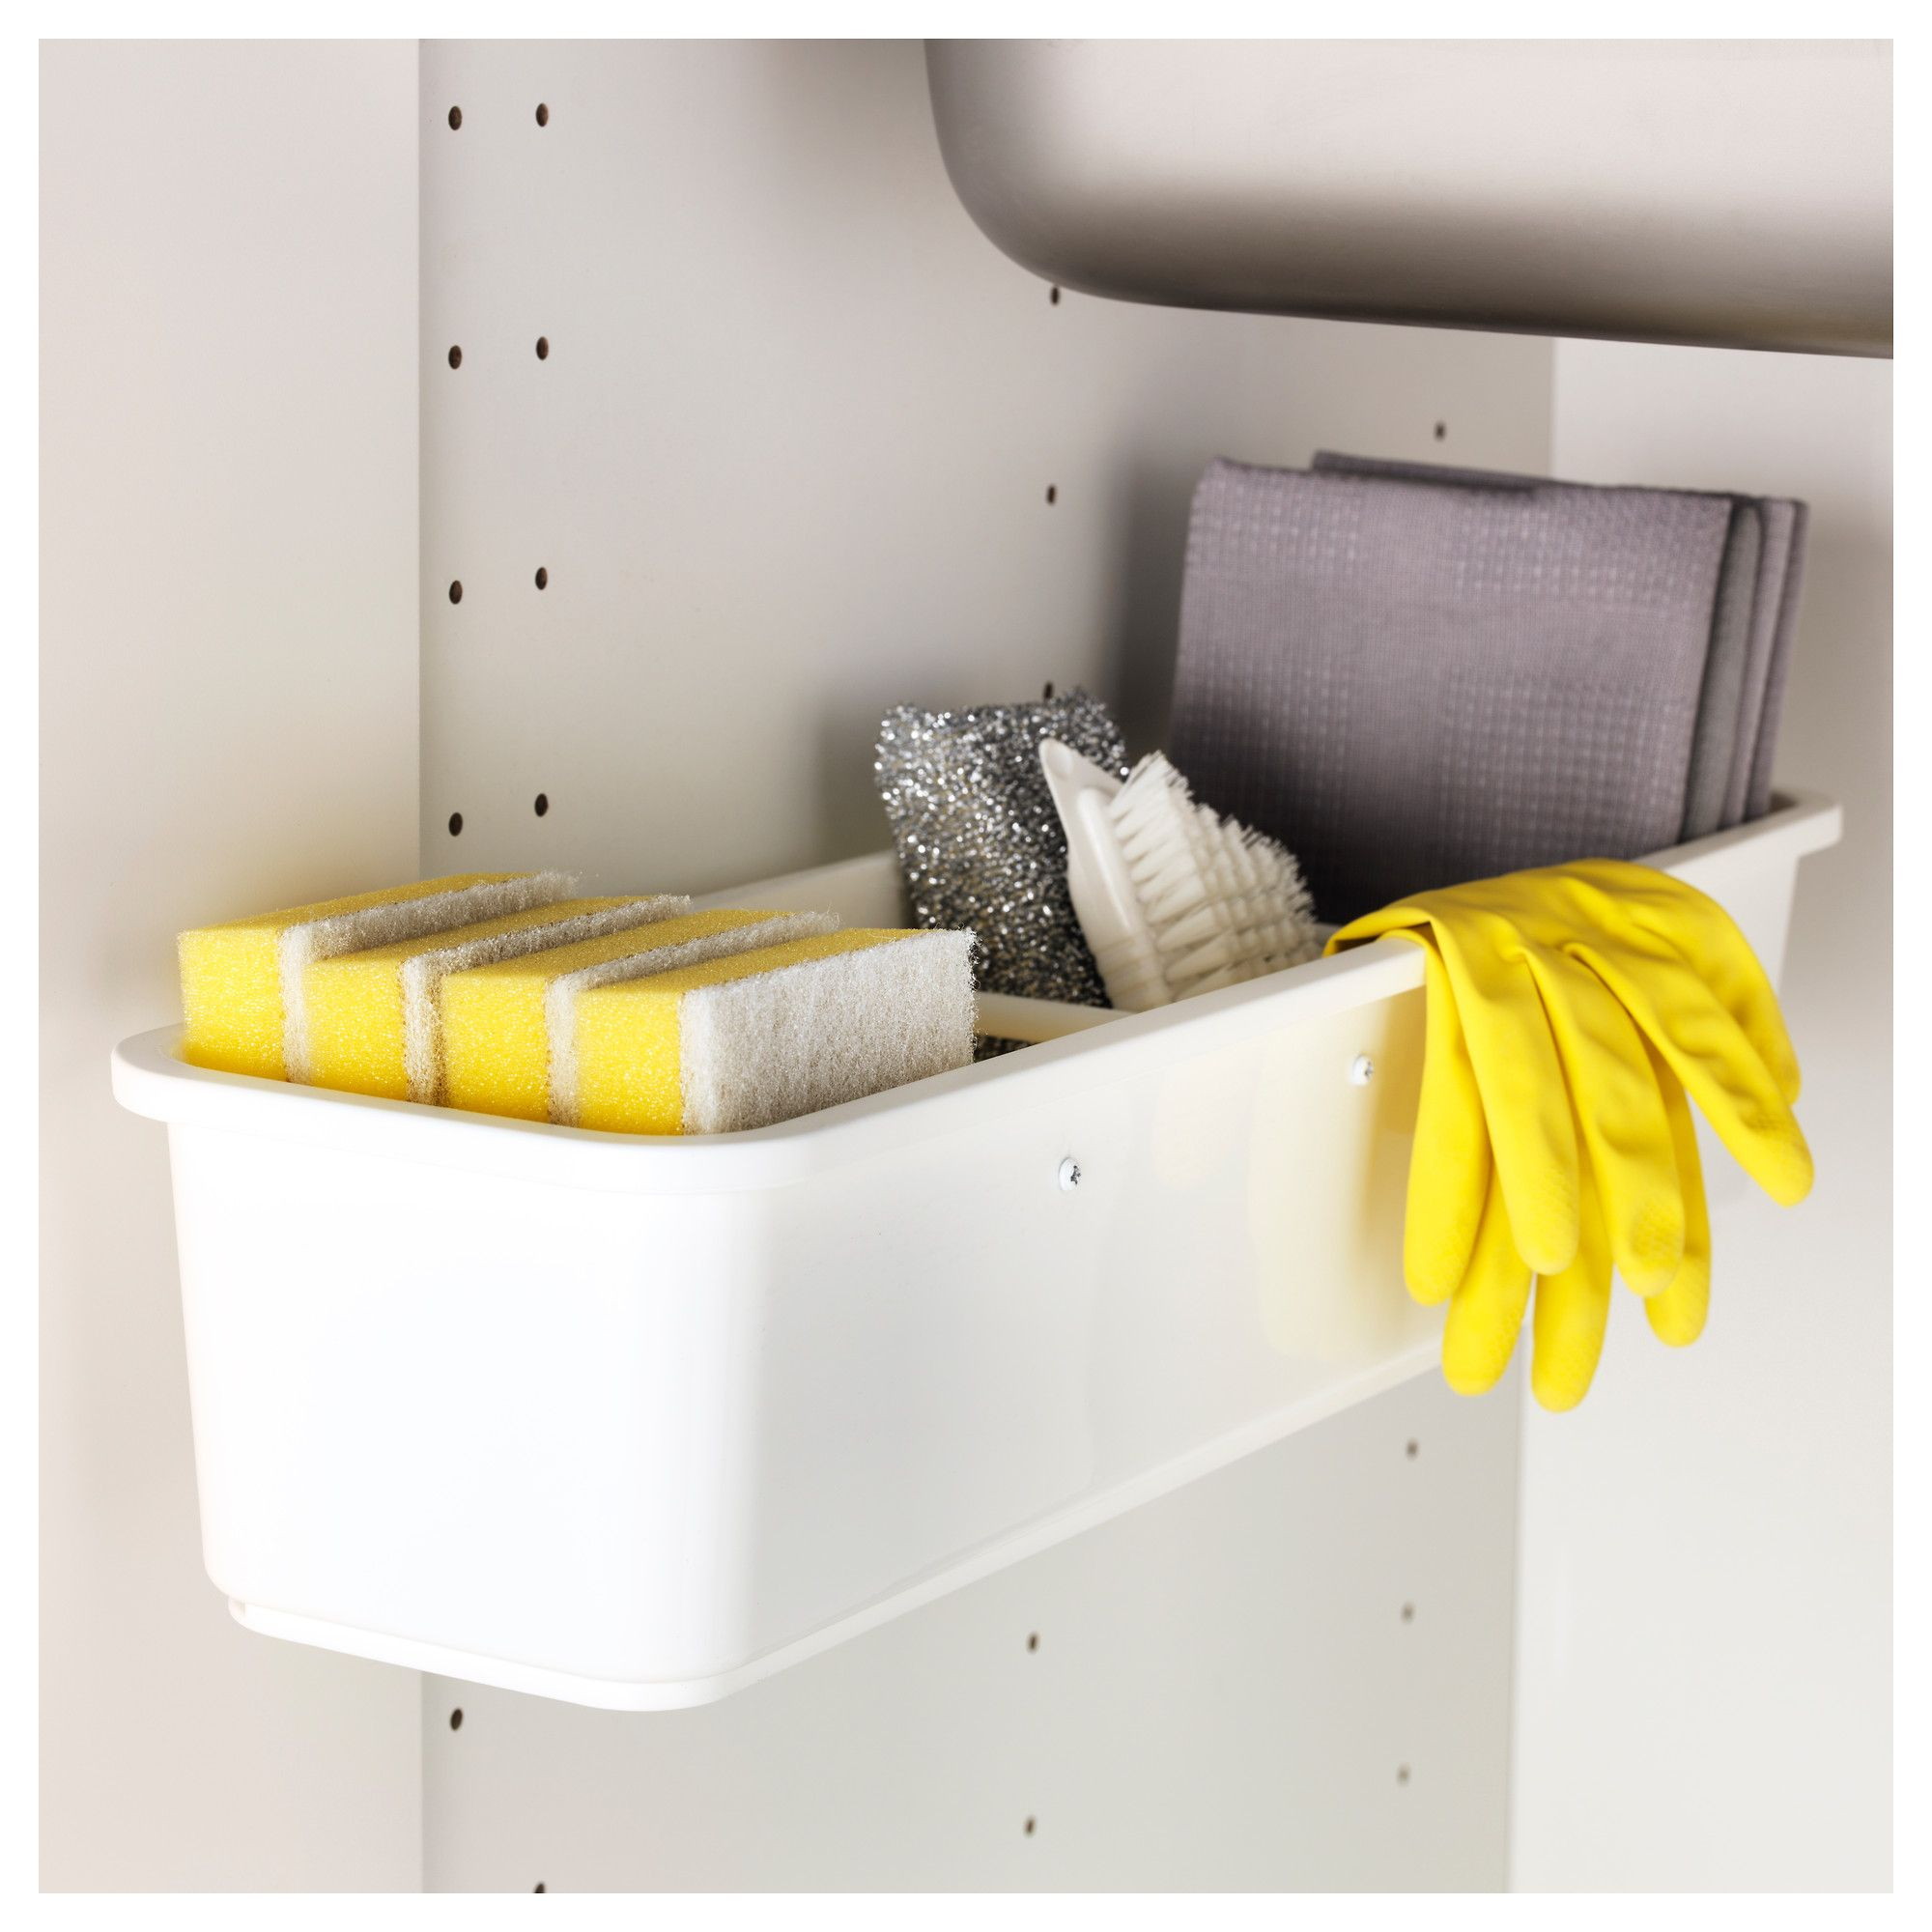 ikea - variera, pull-out container, it's easy to access